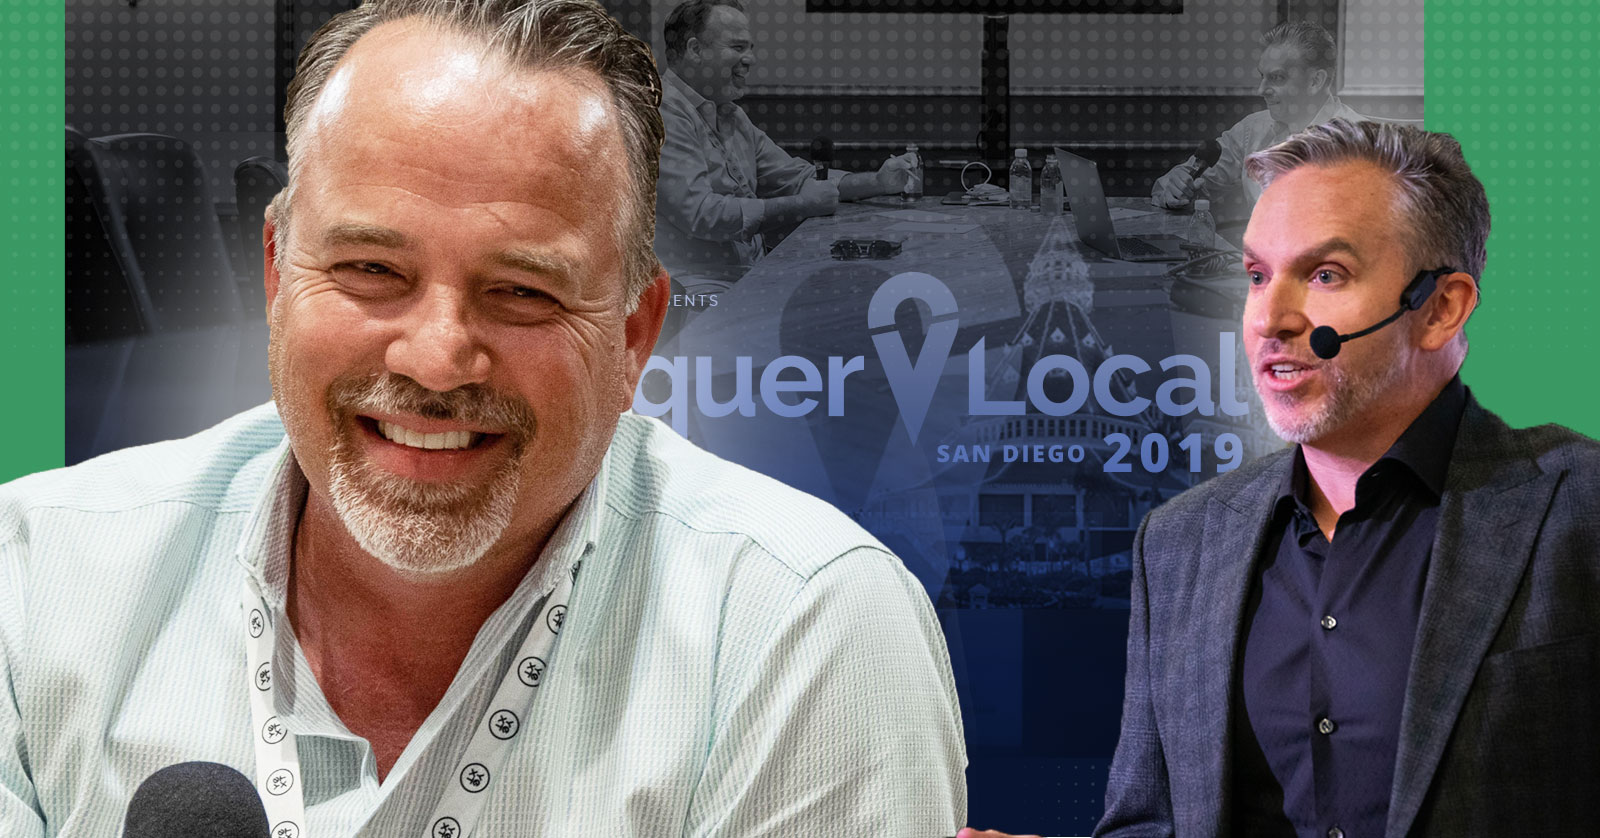 251: The Secret is Out, with Chris Montgomery | Highlights from Conquer Local 2019